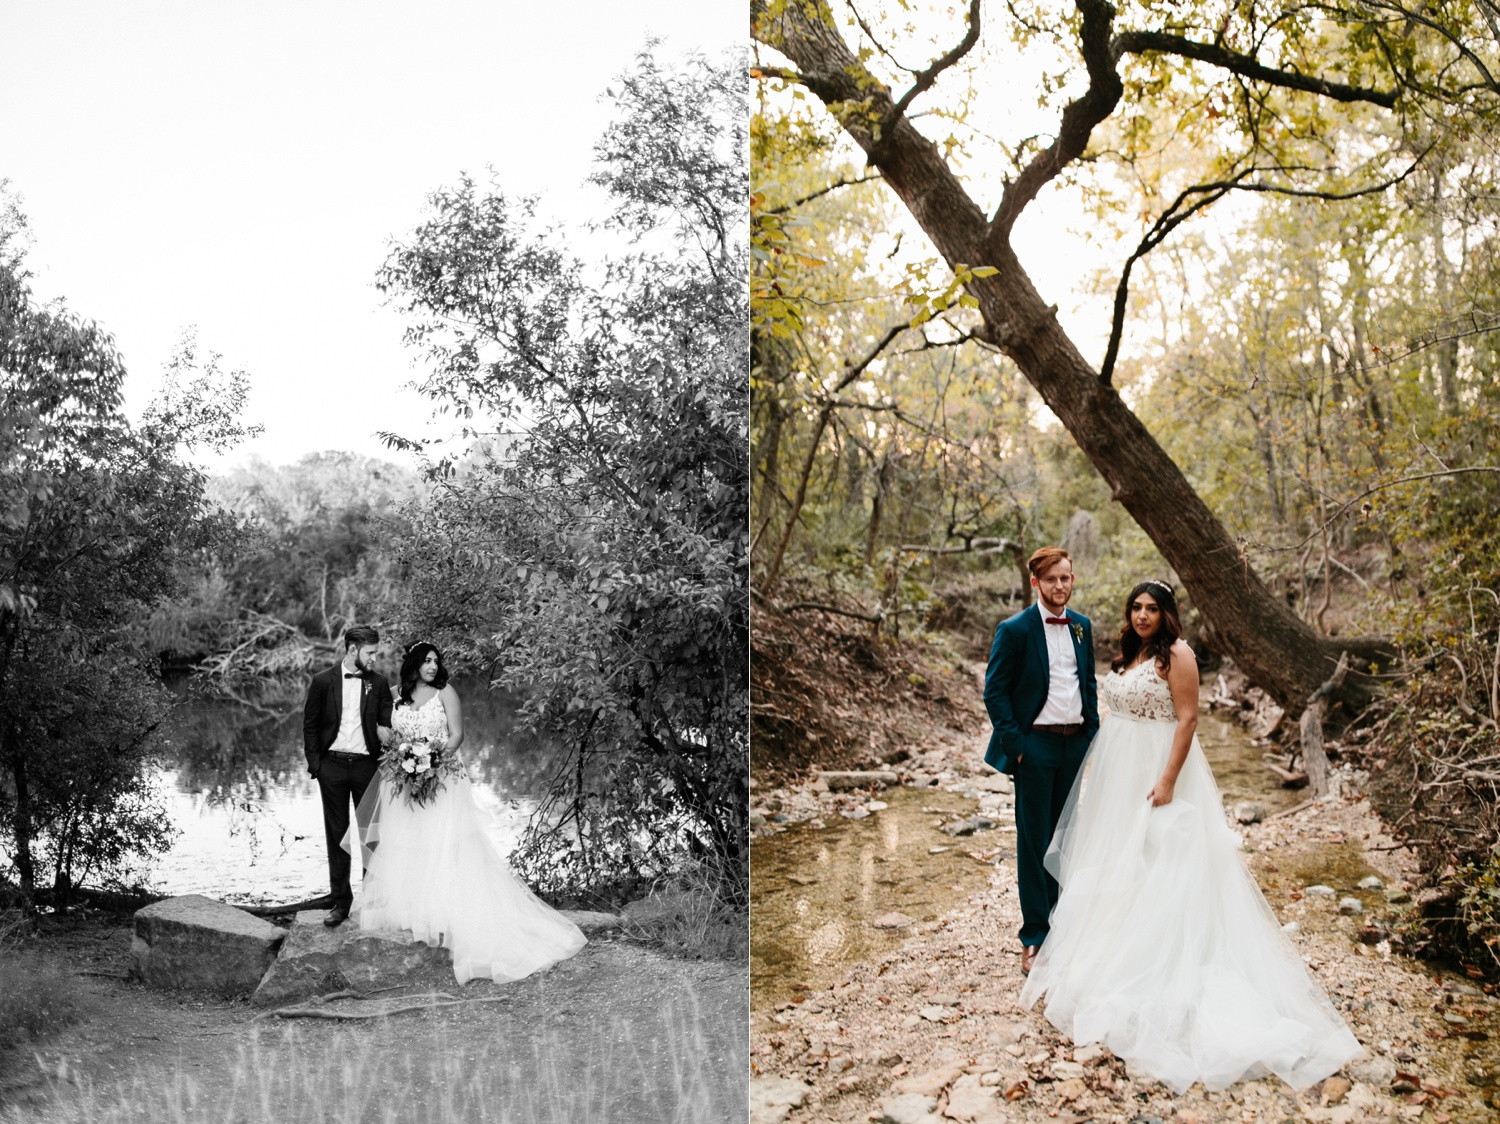 Grant + Lysette | a vibrant, deep burgundy and navy, and mixed metals wedding at Hidden Pines Chapel by North Texas Wedding Photographer Rachel Meagan Photography 244